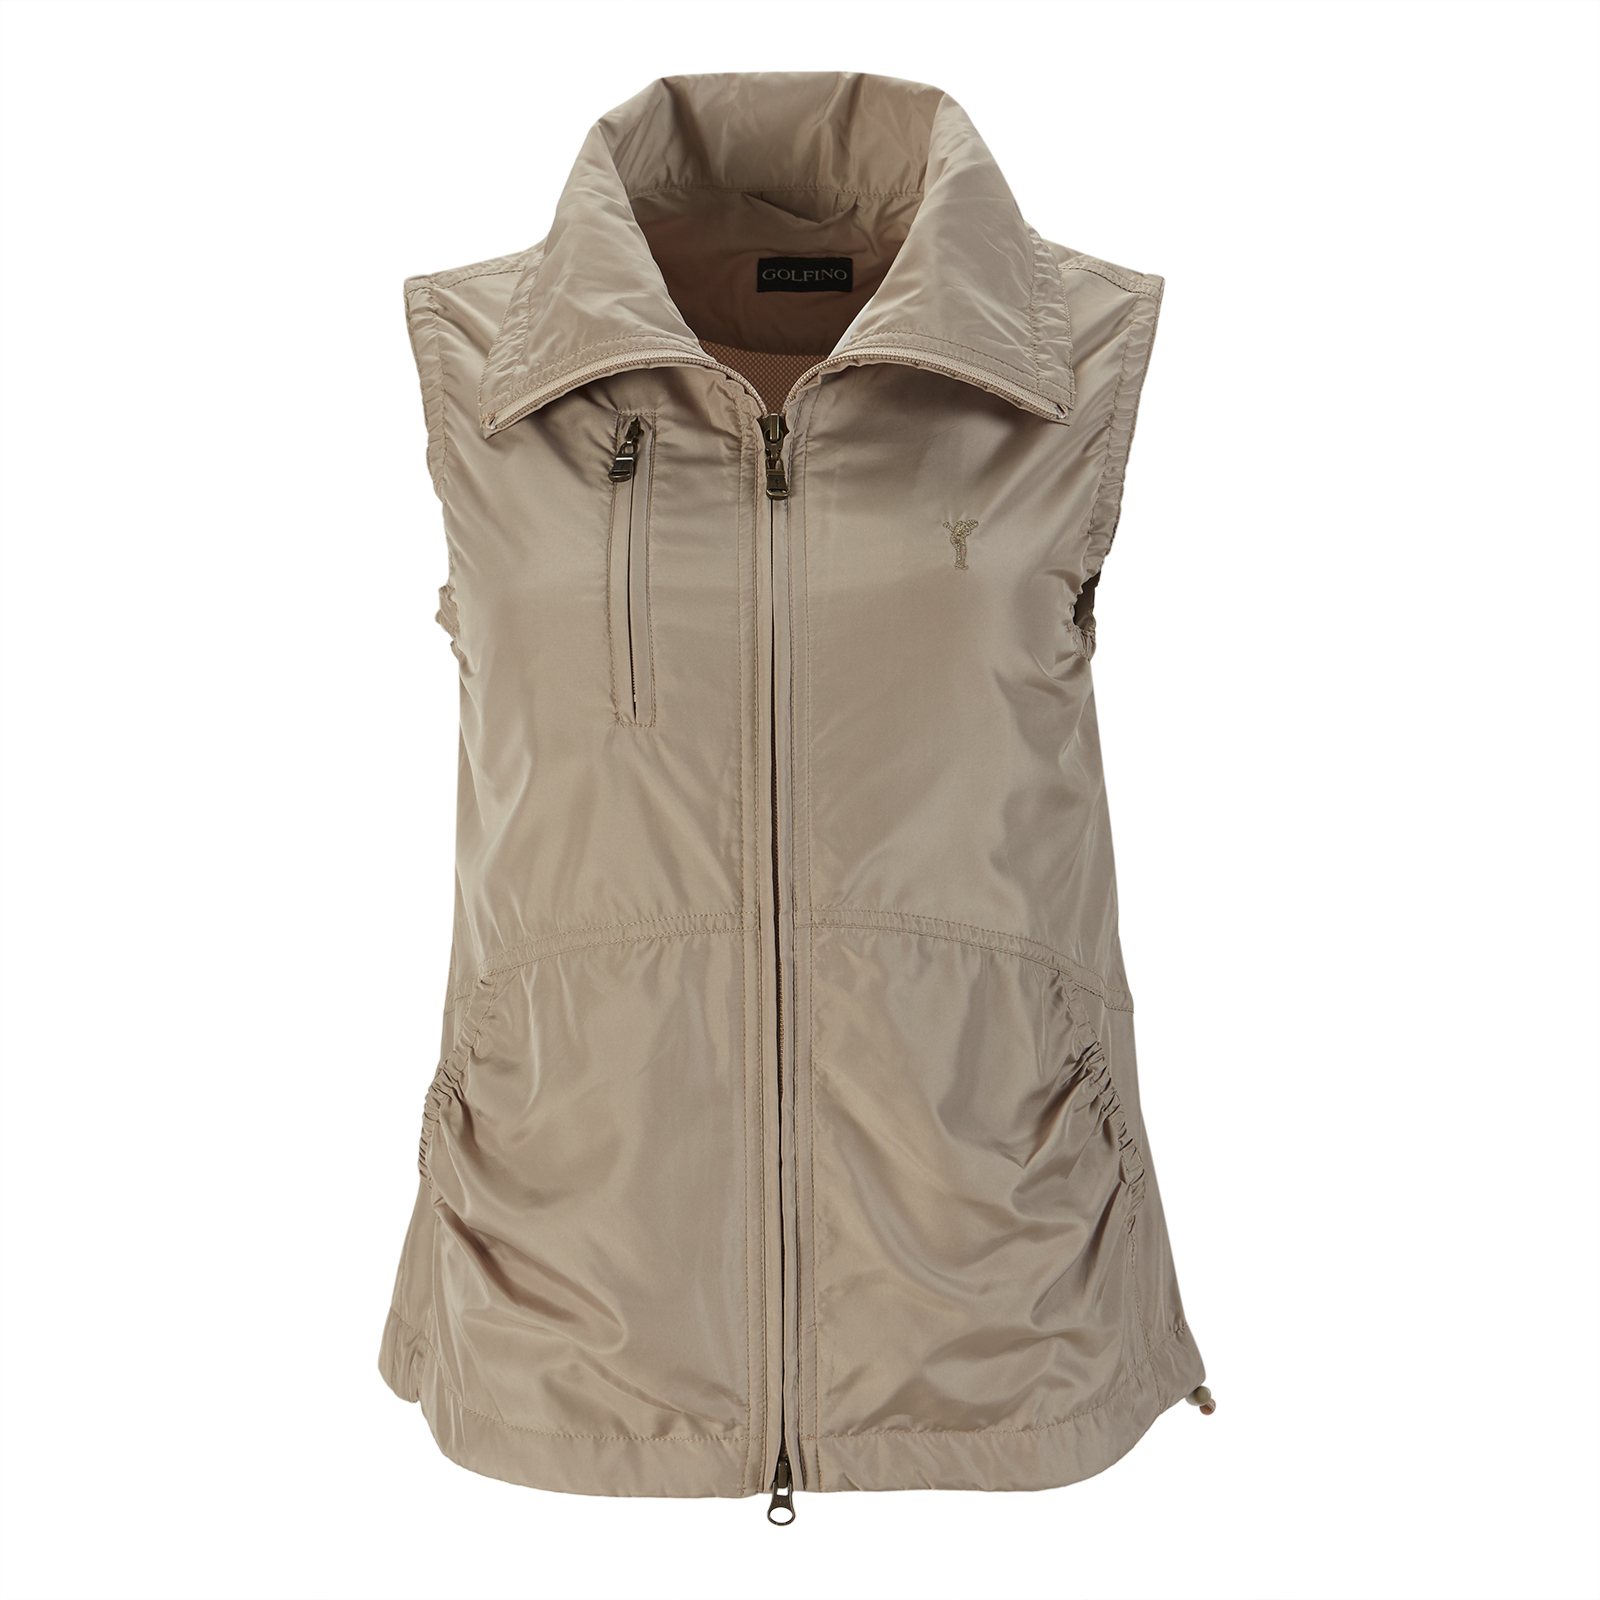 Ladies' Wind Protection golf waistcoat